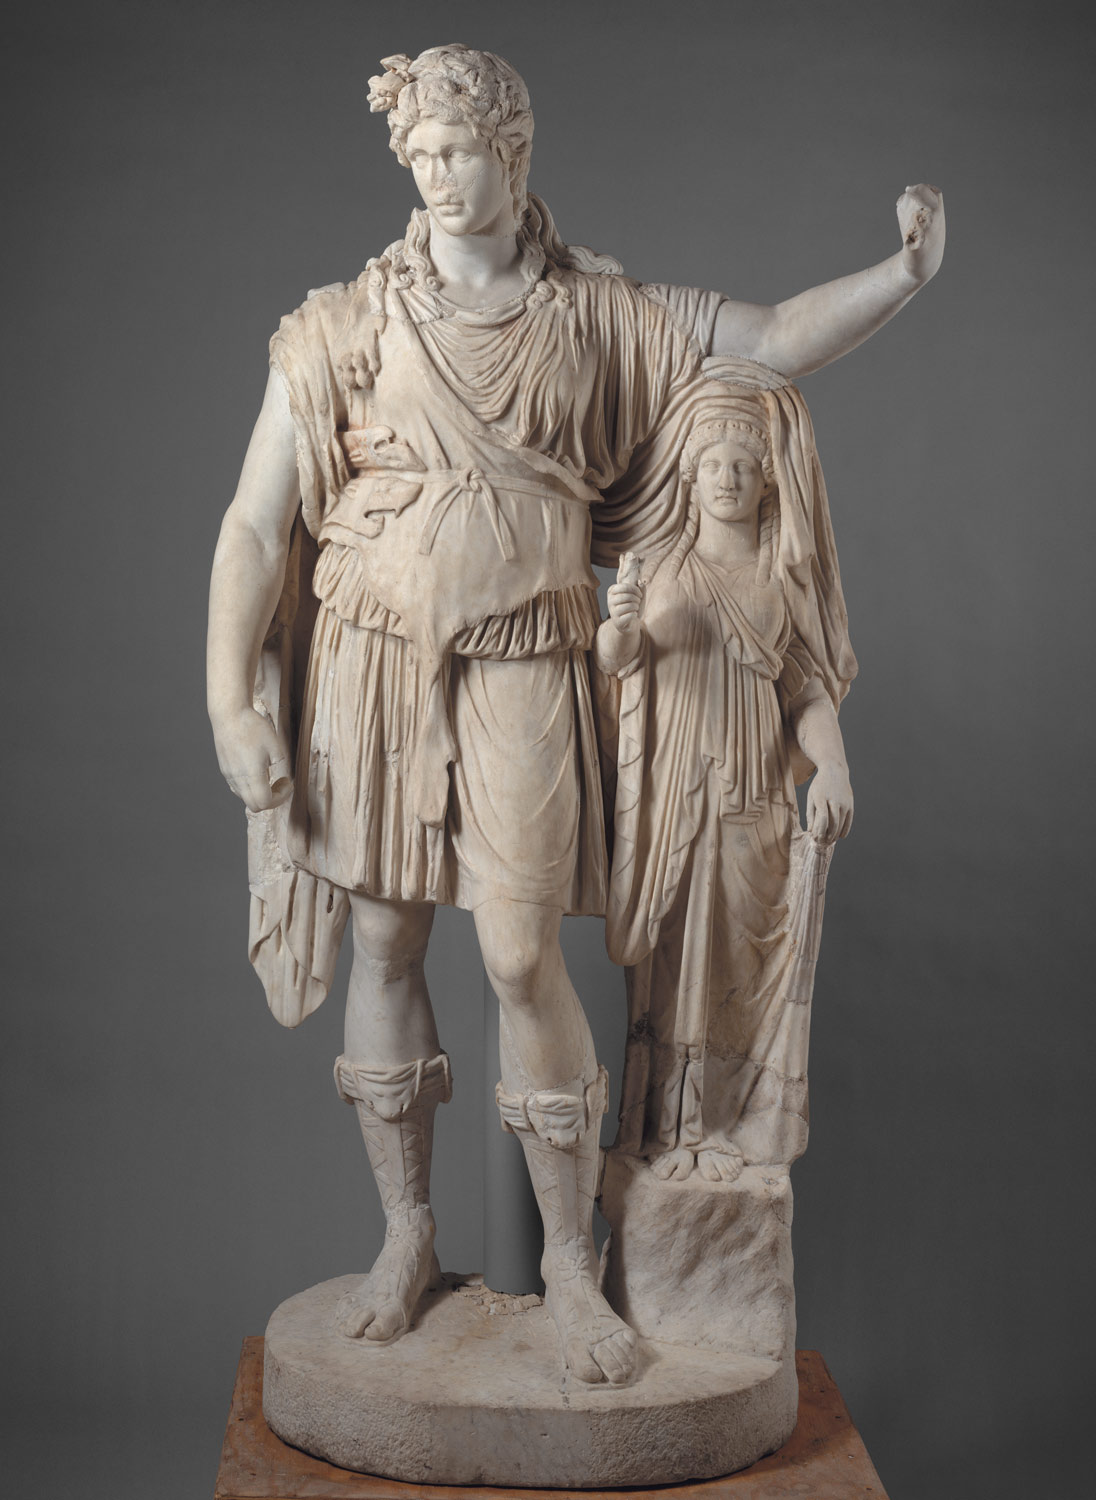 Statue of Dionysos leaning on a female figure (Hope Dionysos)